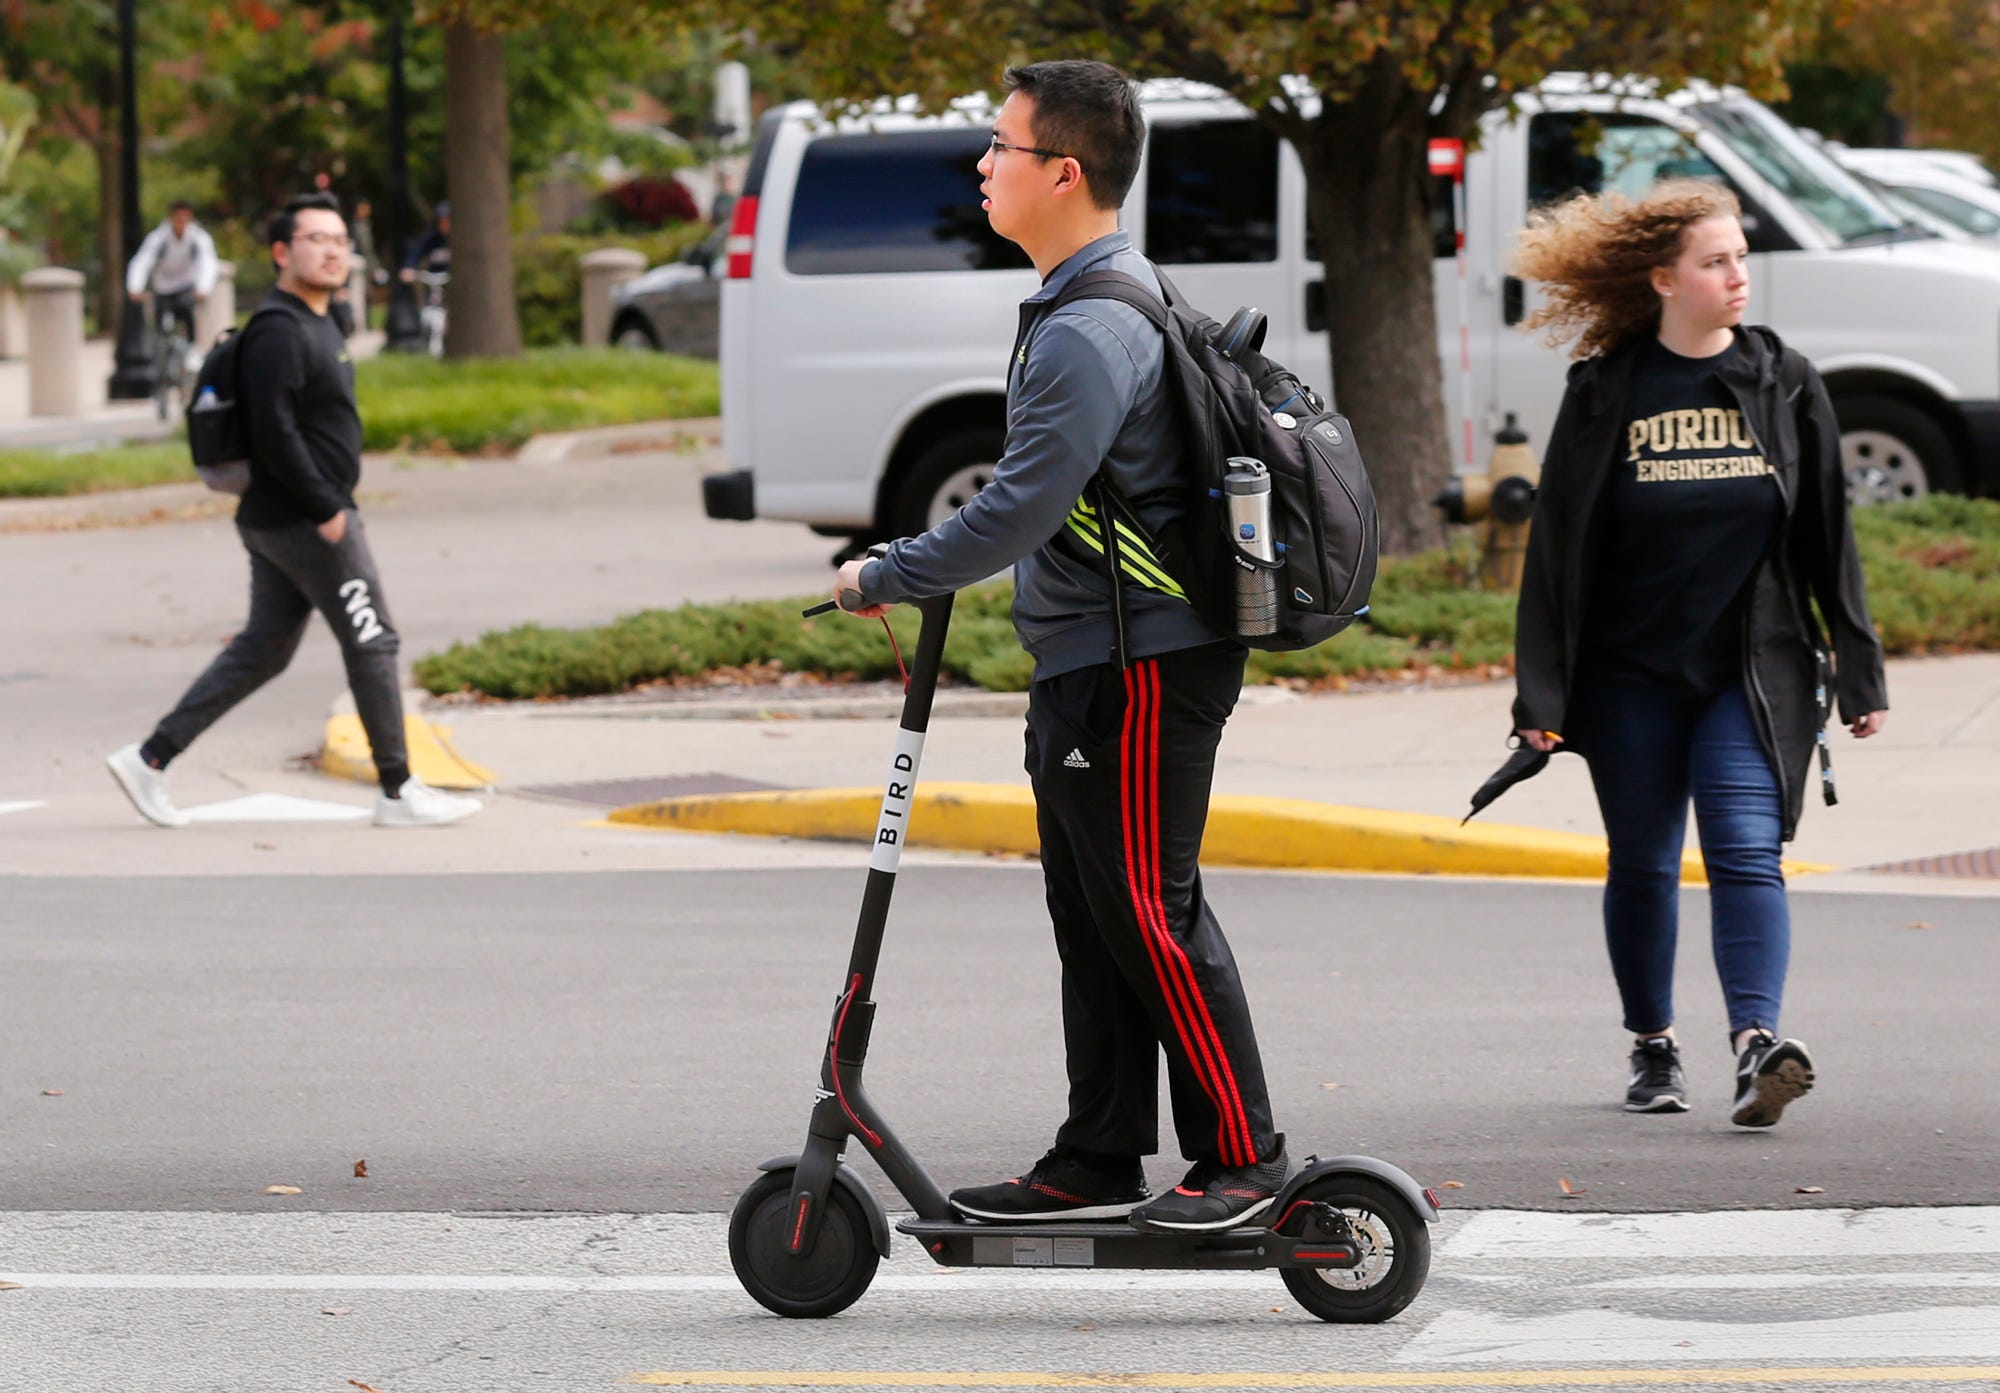 A student rides a BIRD electric scooter Thursday, October 11, 2018, on the campus of Purdue University in West Lafayette.